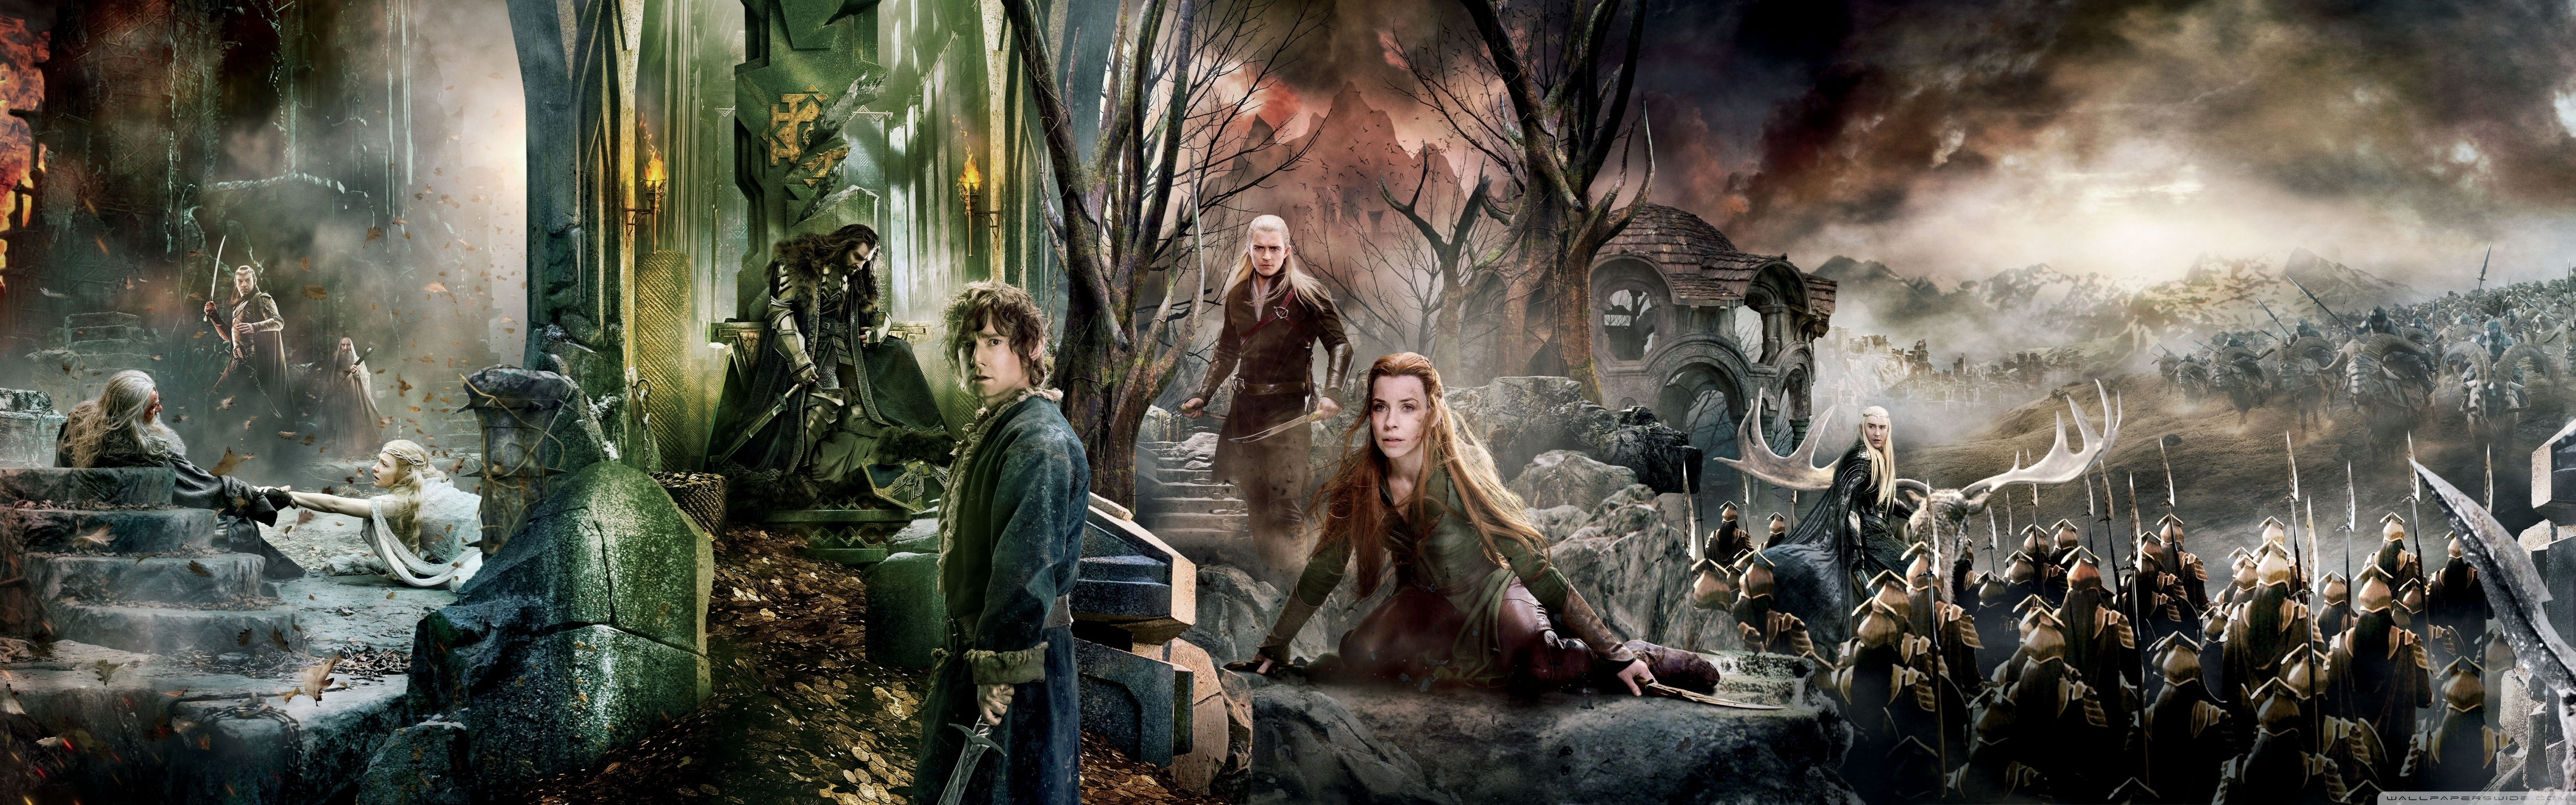 the hobbit the battle of the five armies dual monitor ❤ 4k hd